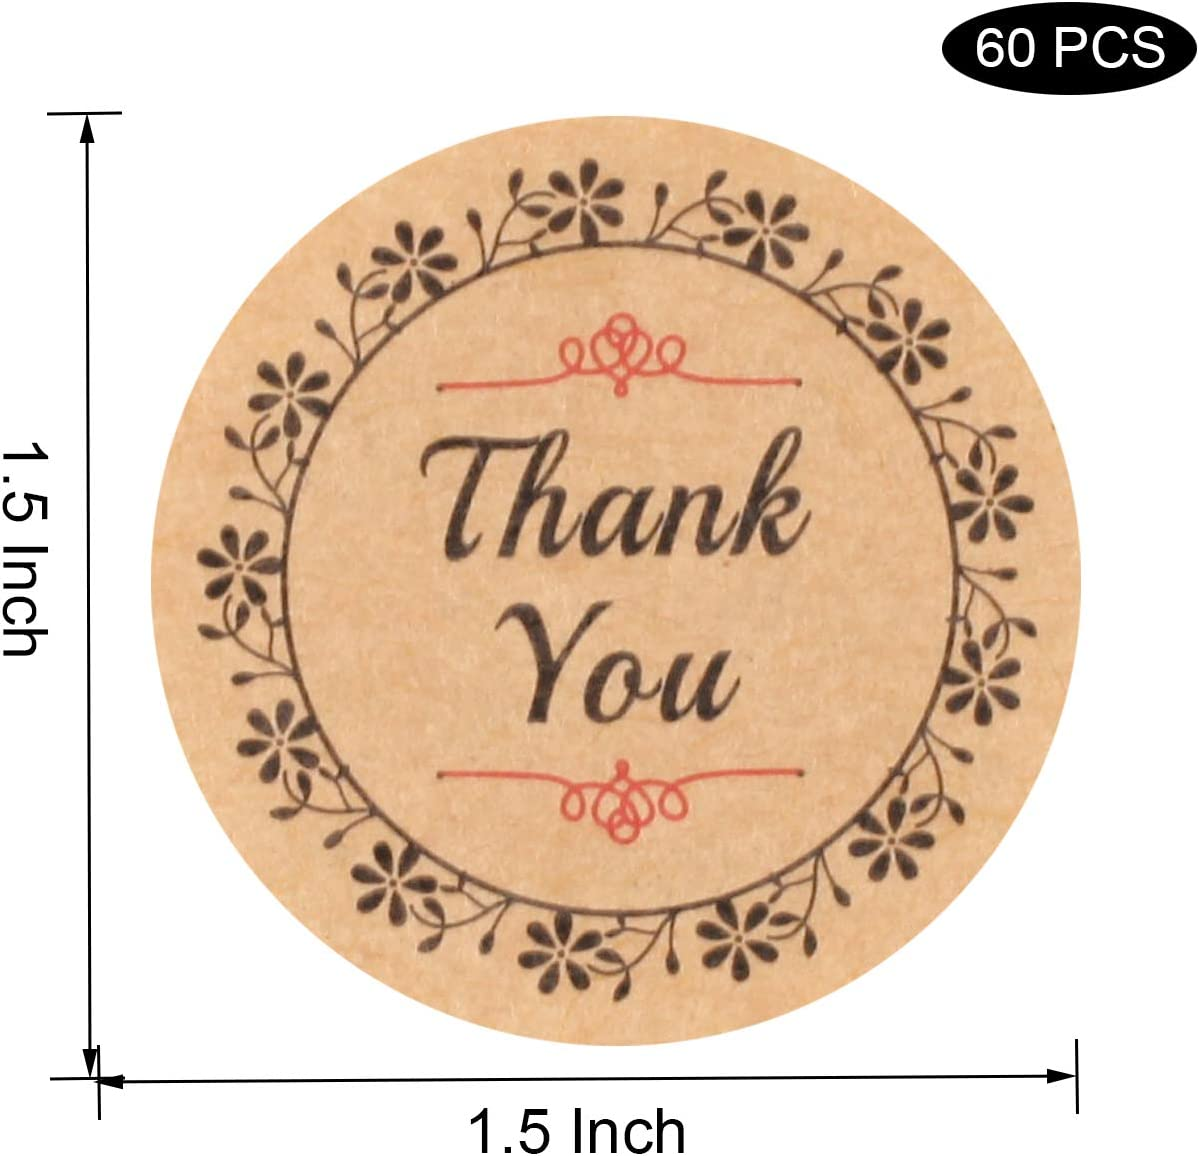 ANYI16 Self Adhesive Treat Bag Cellophane Cookie Bag Sealing Treat Bag White Polka Dot Party Favor Gift Bag with 60 Thank You Labels for Bakery 3.9 x 3.9 inches, 100 Pcs Cookie Candle Soap